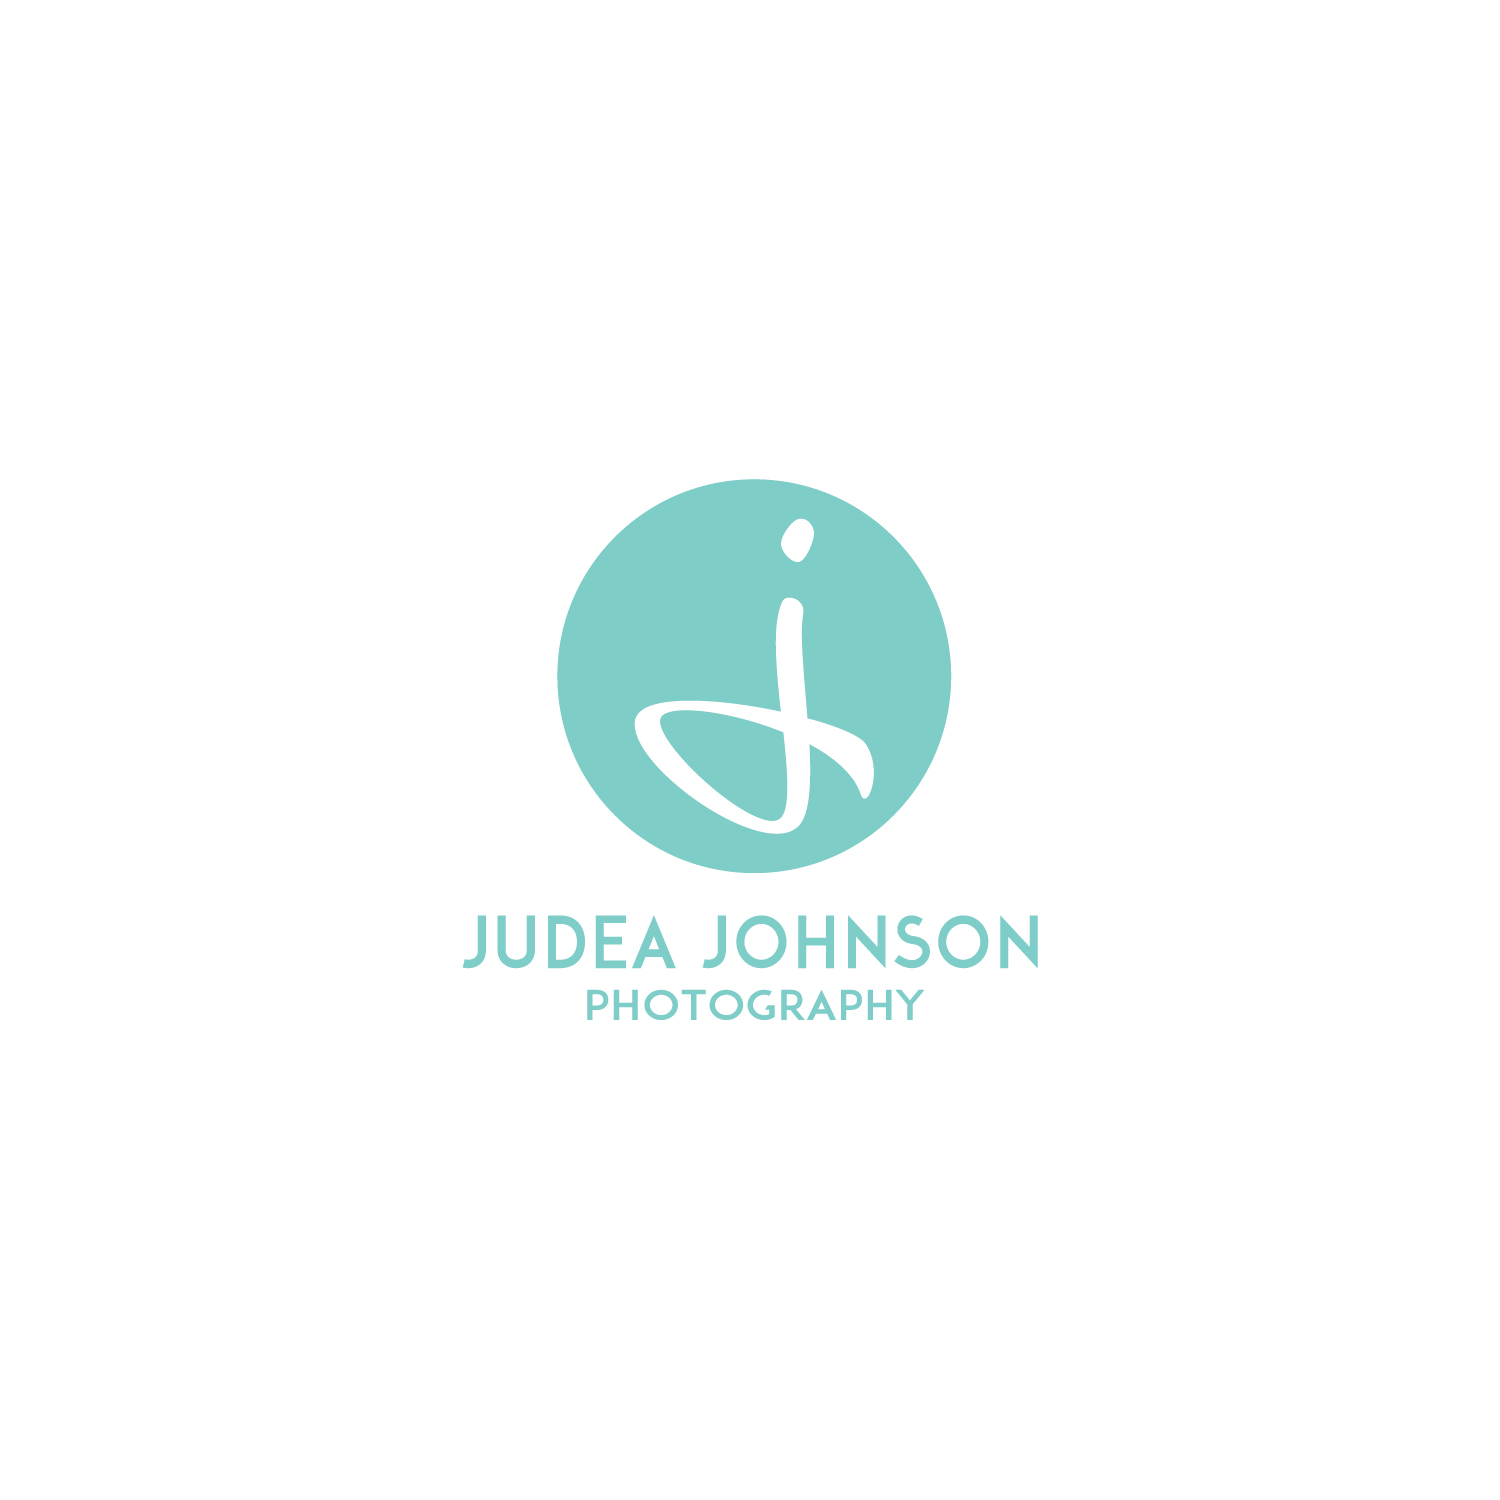 Judea Johnson Photography | Logo Design | Bravebird Studio - Branding & Web Design